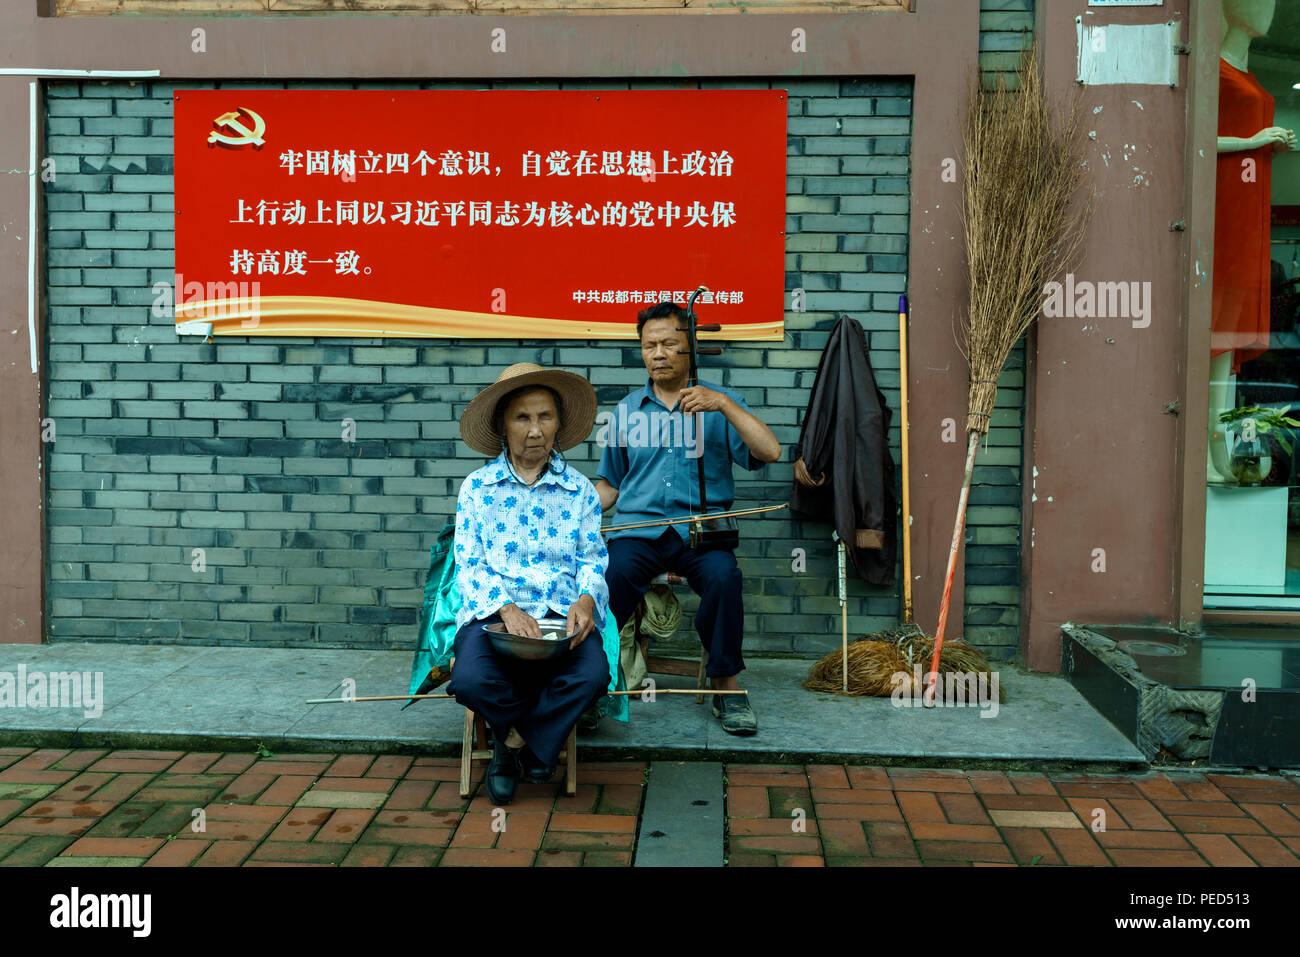 A political sign on the street that promotes Chinese Communist Party Leader Xi Jinping. The sign states that people should follow the leader. - Stock Image